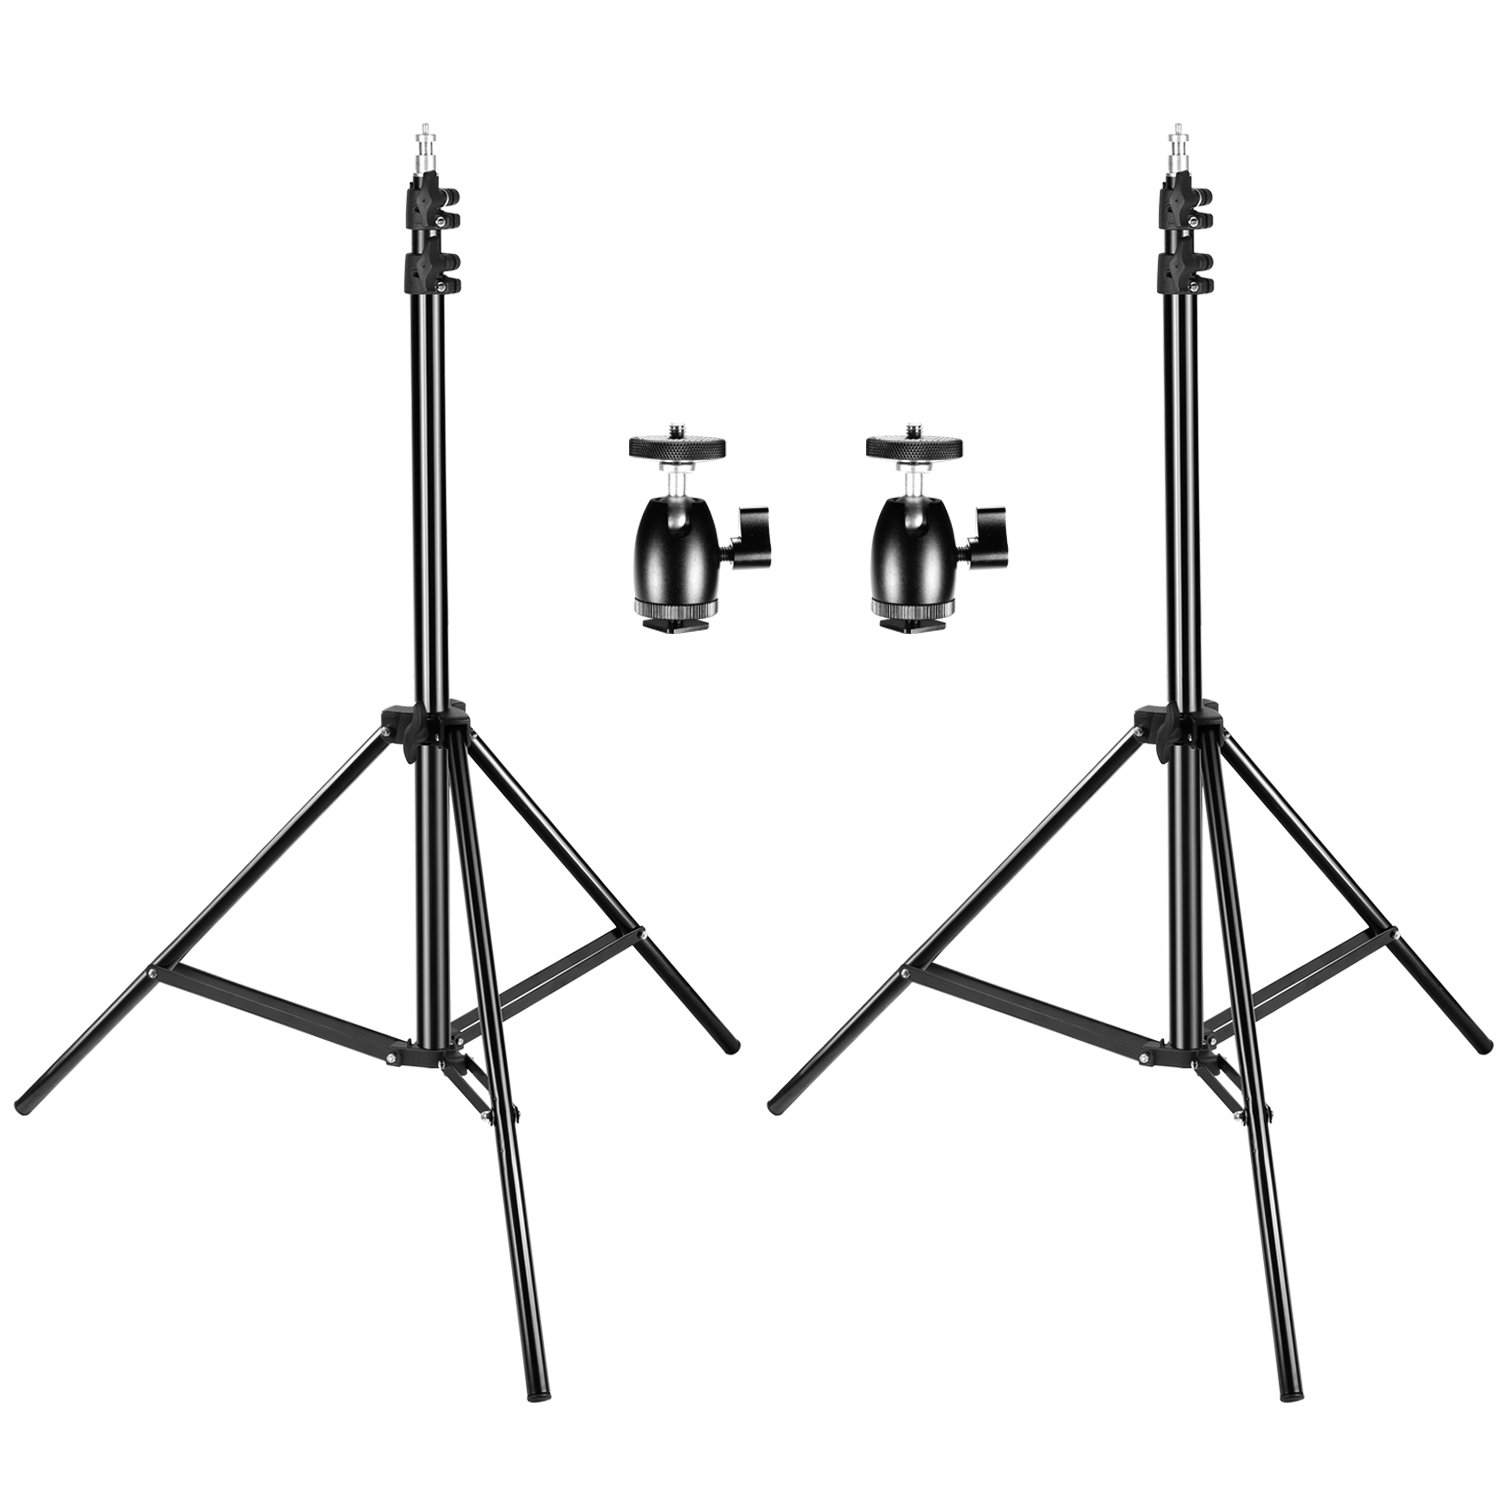 Neewer 2 Packs 75 inches/190 centimeters Adjustable Light Stands with 2 Pieces 1/4-inch Screw Tripod Mini Ball Head Hot Shoe Adapters for HTC Vive VR, Video, Portrait and Product Photography 90088786